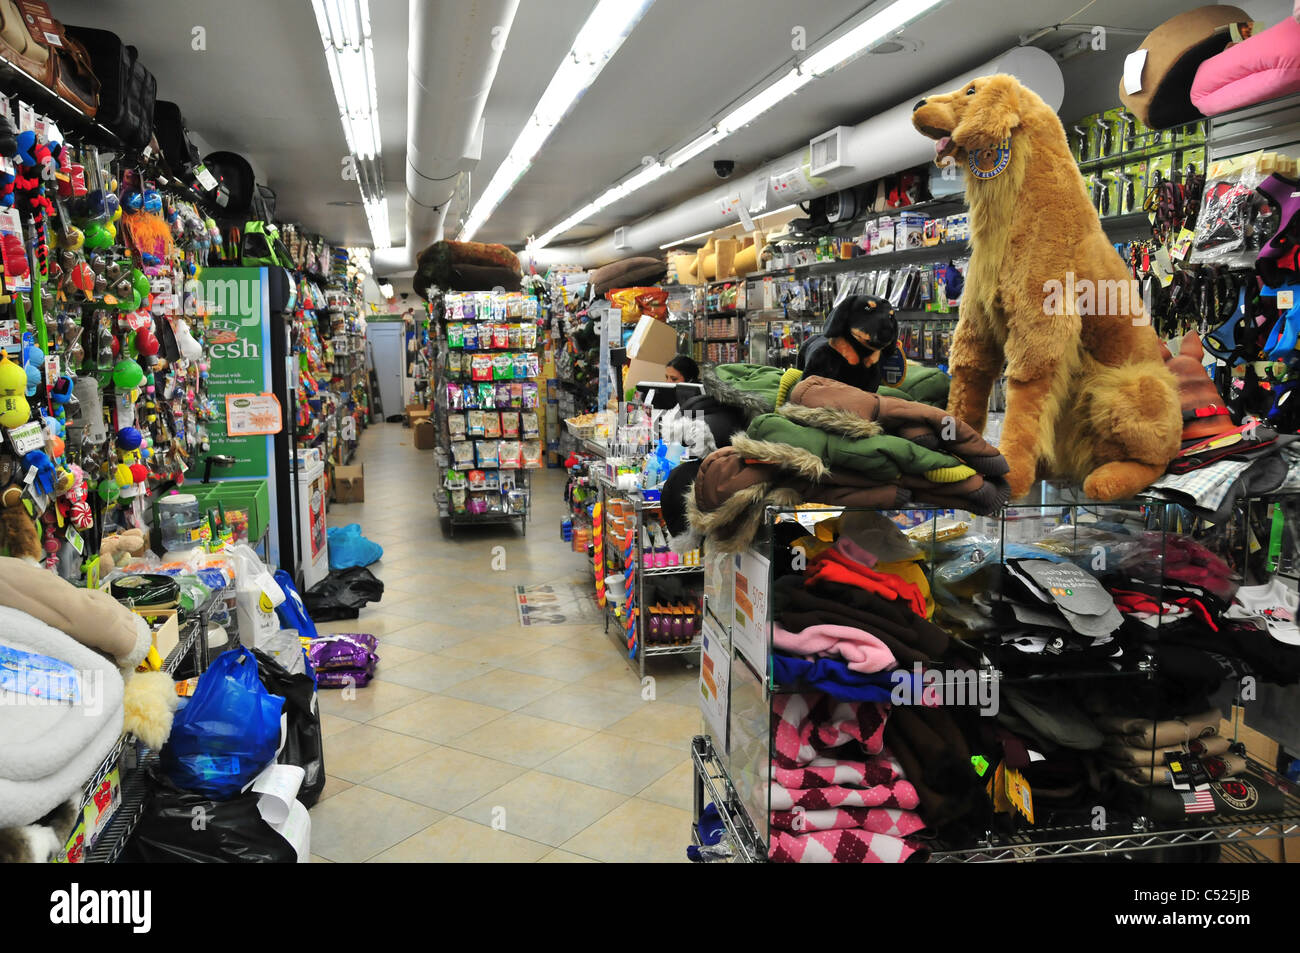 Clothing stores in chinatown new york